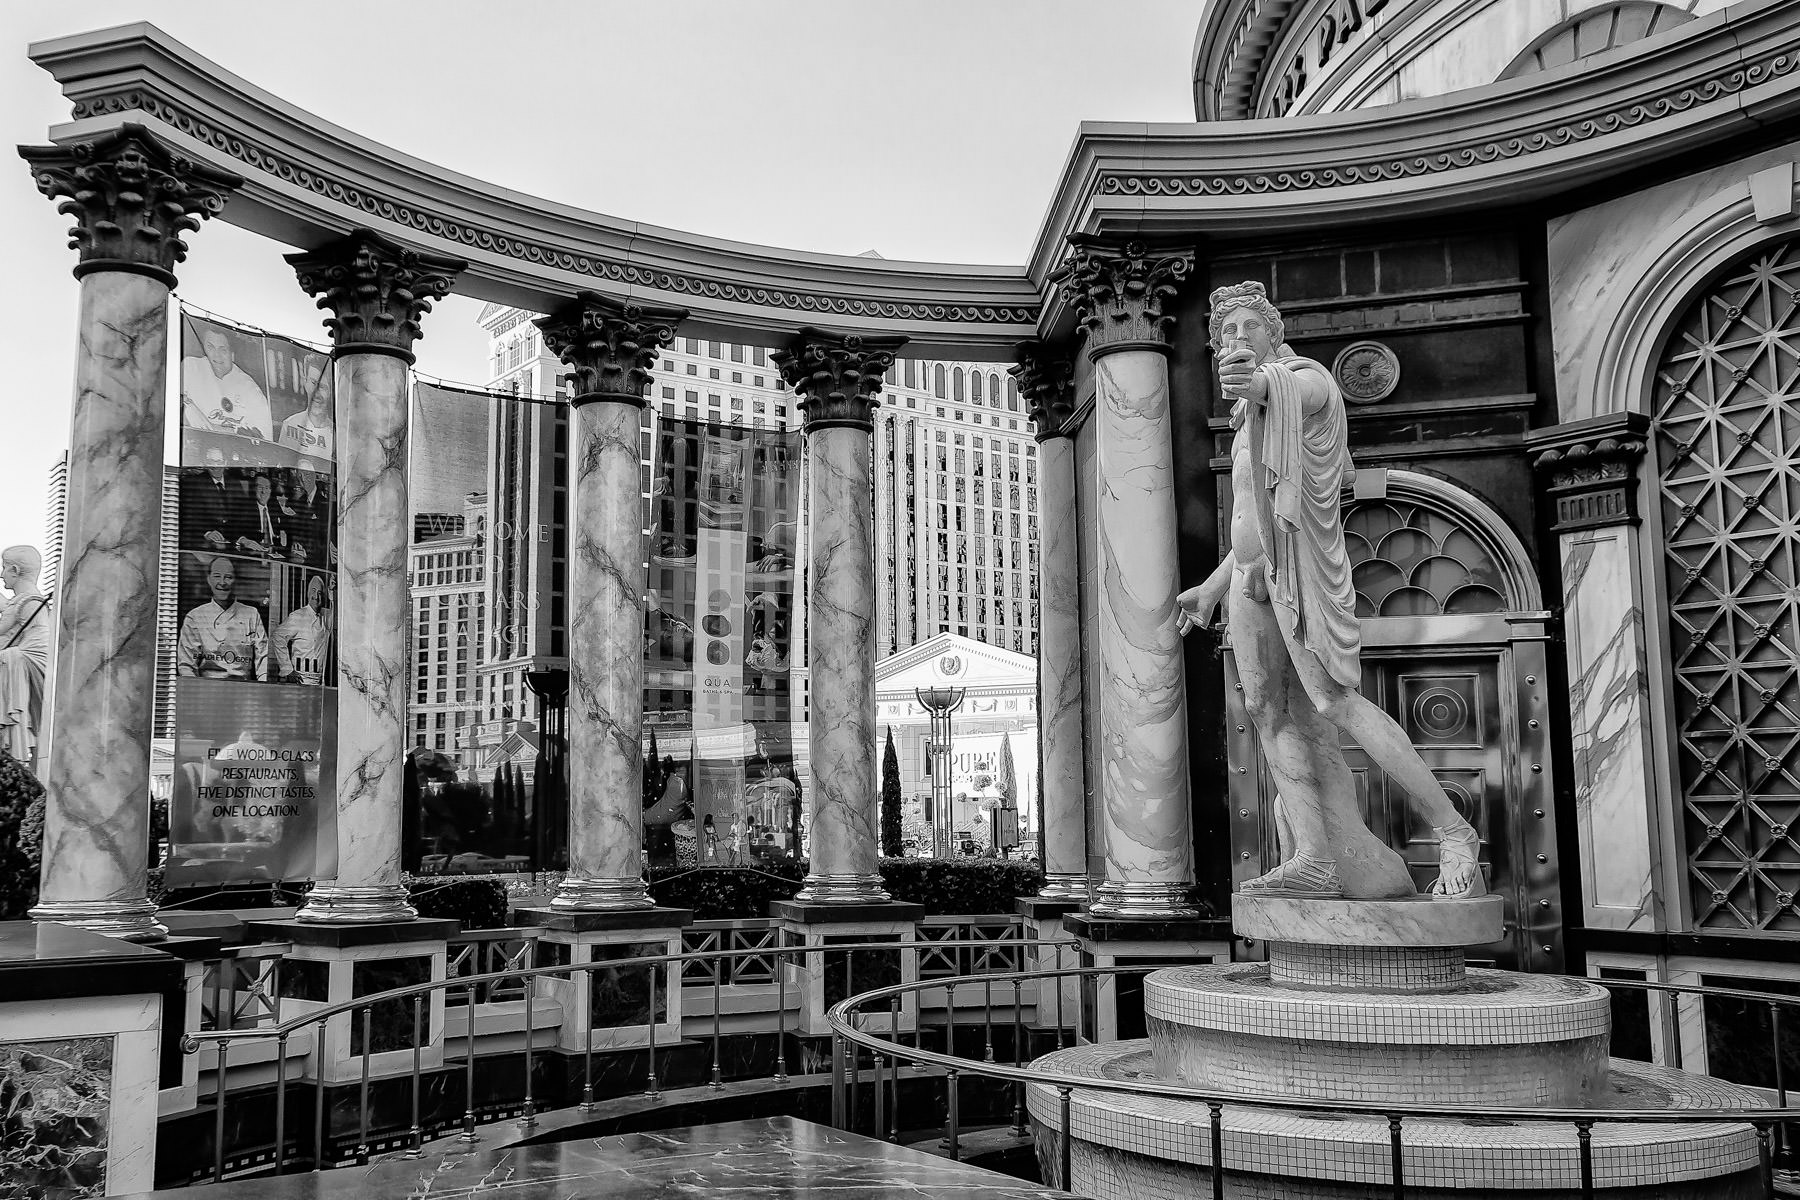 A statue outside of Caesars Palace, Las Vegas.